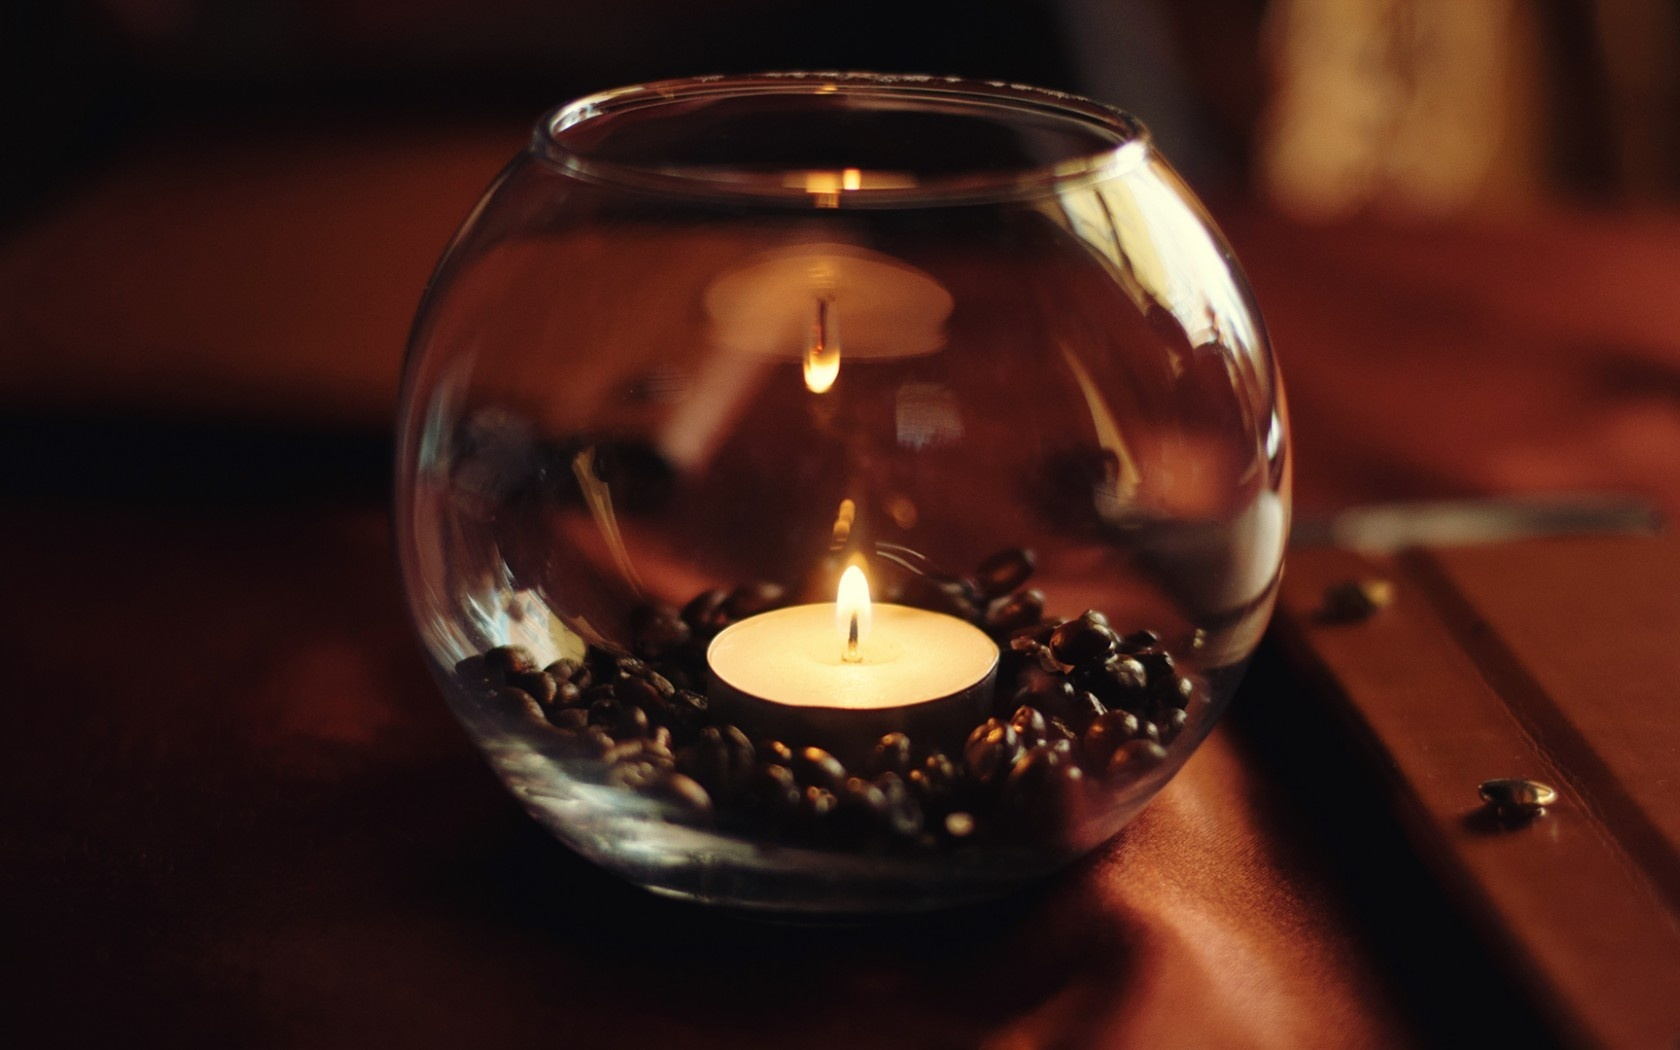 28 Wonderful Hd Candle Wallpapers